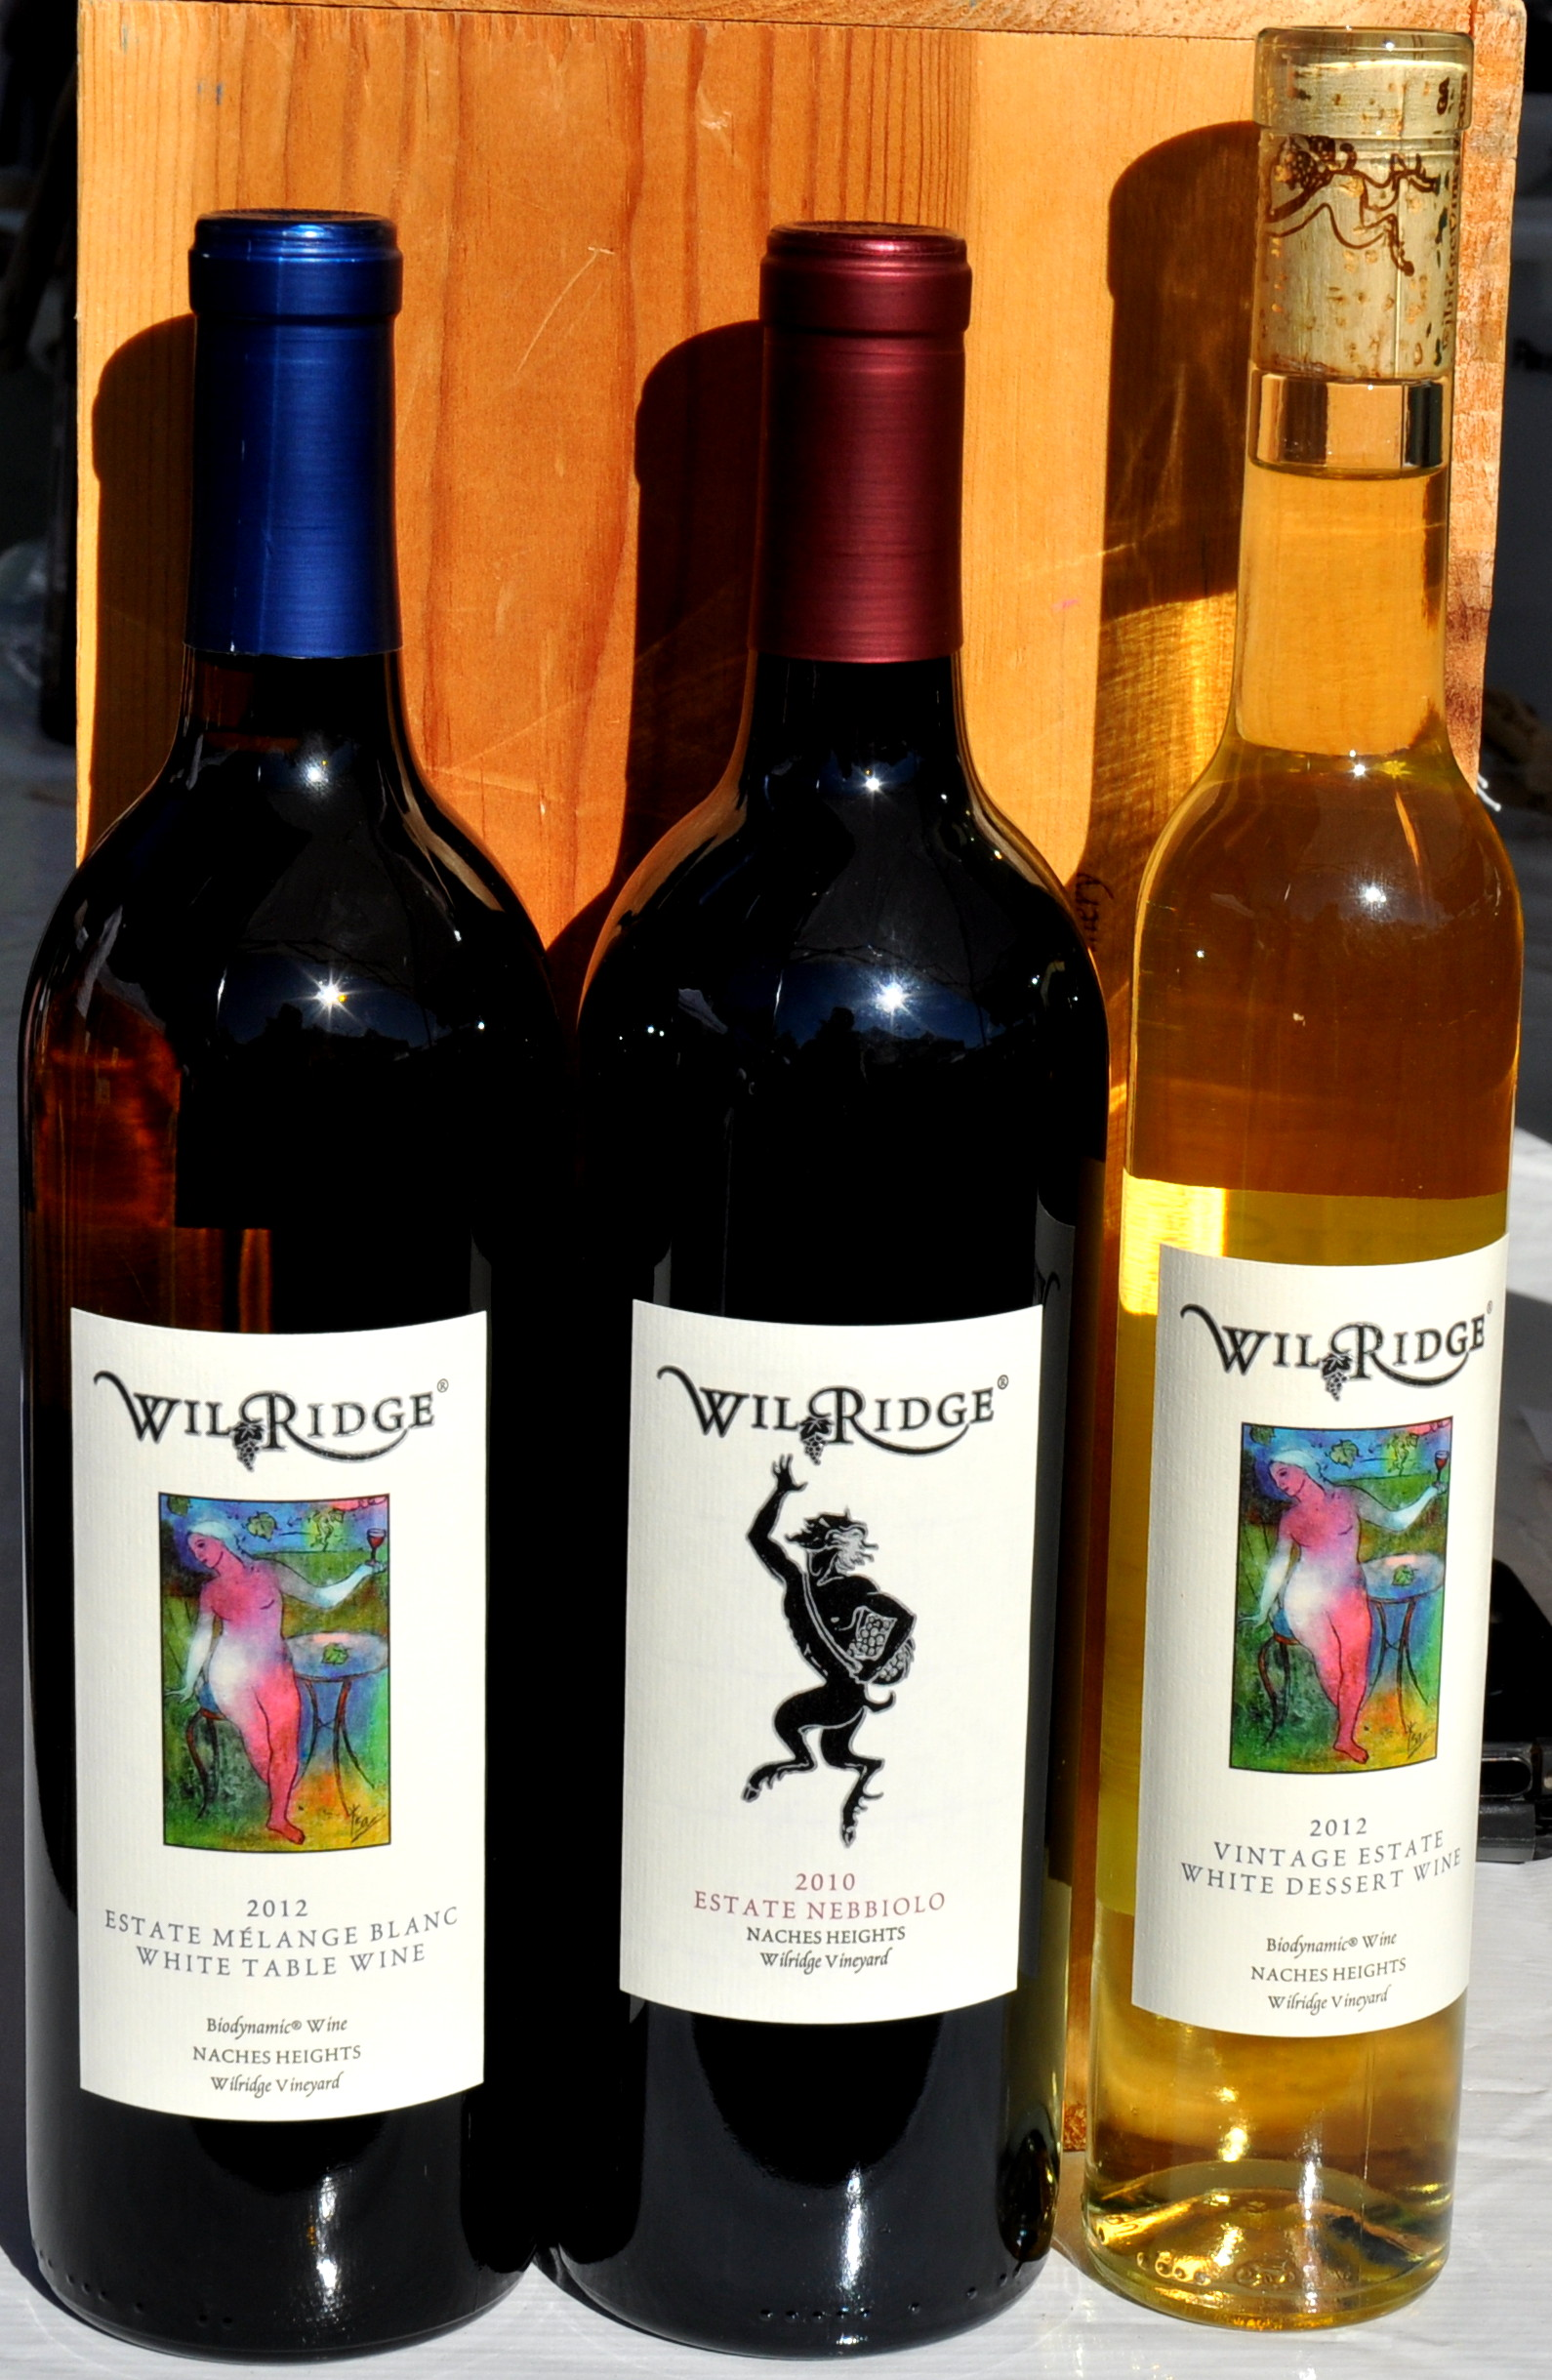 These organic estate wines come from Wilridge Winery in Madrona. Photo copyright 2013 by Zachary D. Lyons.